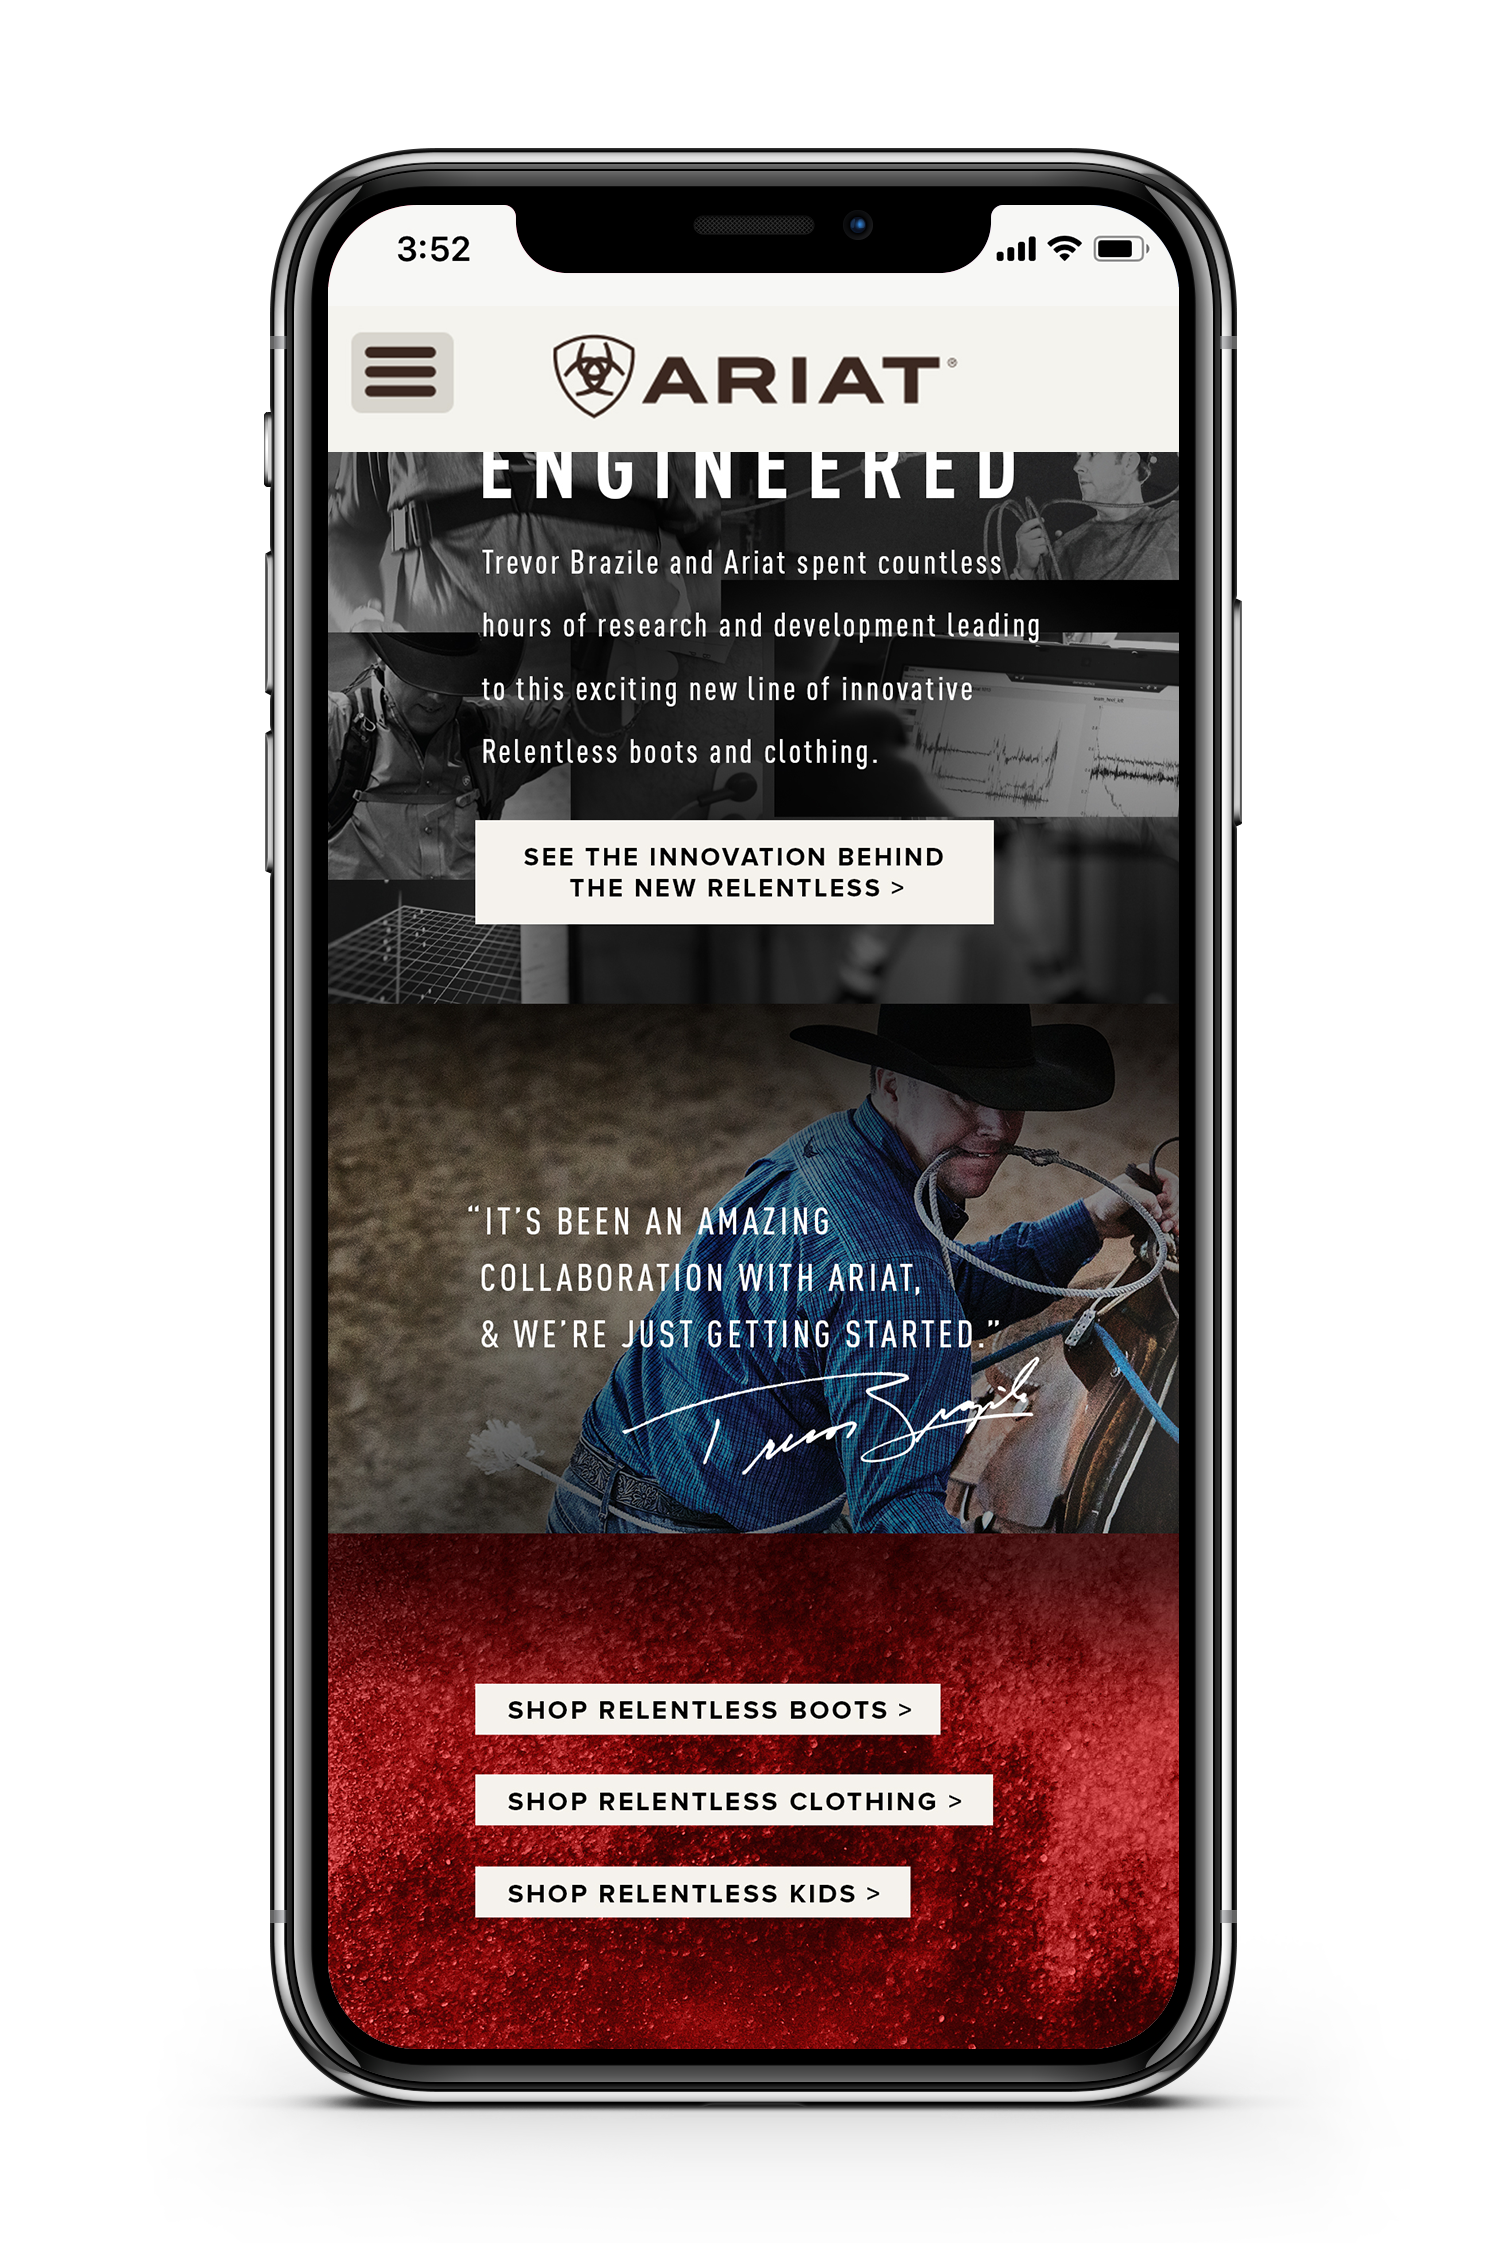 Ariat information page for relentless displayed on smartphone